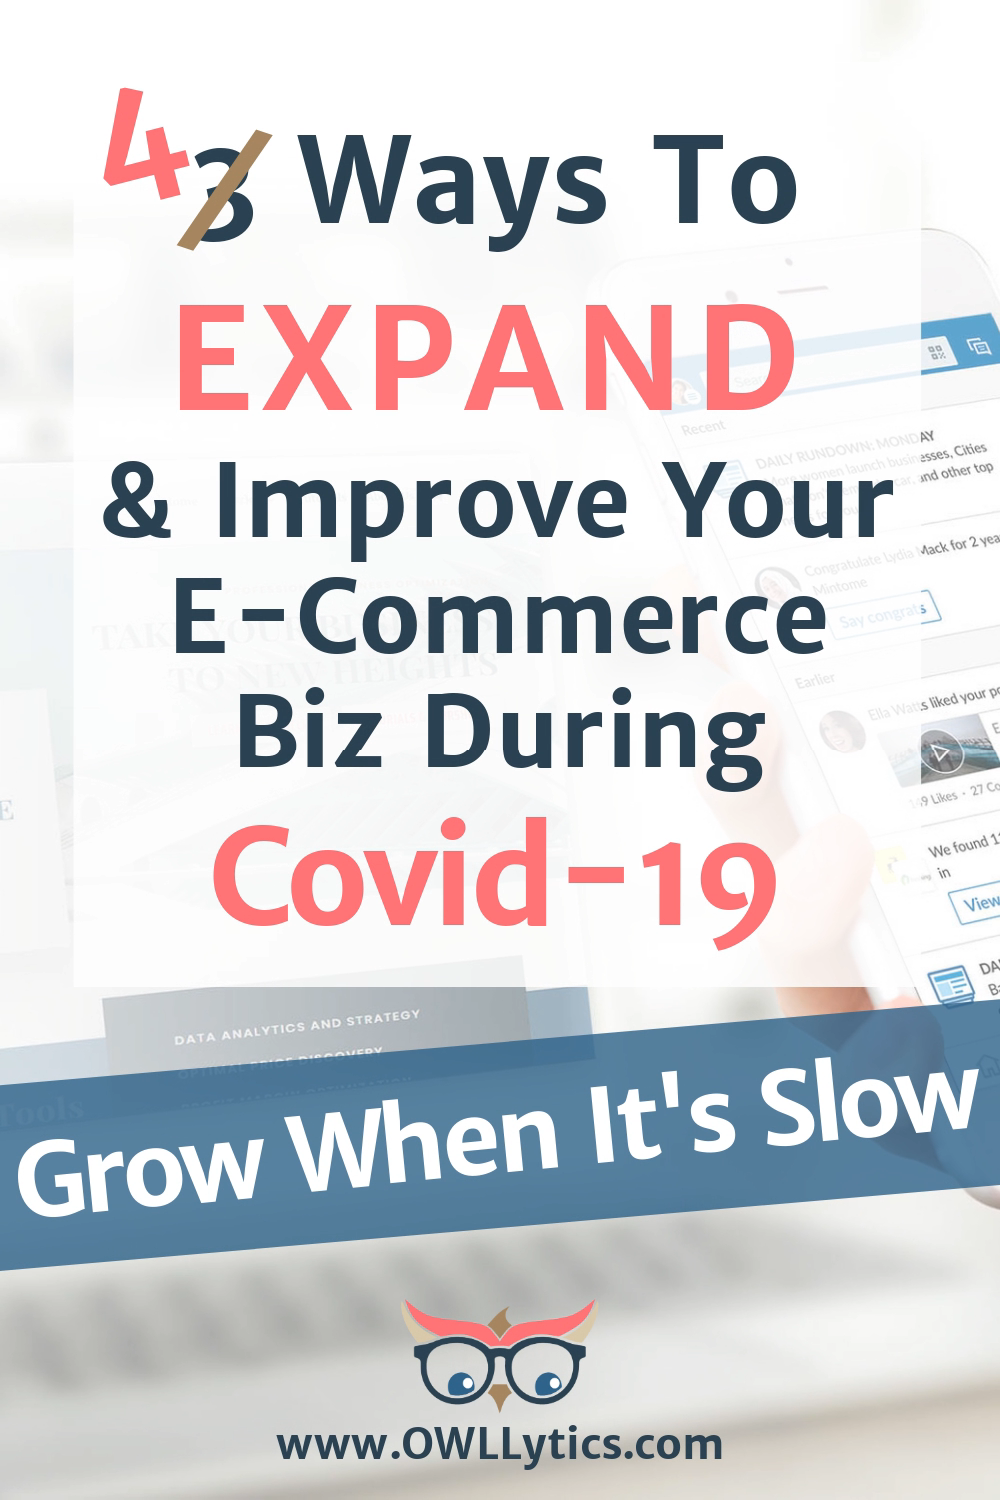 There are bound to be times when, for whatever reason, sales are just SLOW. What an opportunity to make your shop better than EVER! Here are several ways to improve & grow your store during the downtime.  Keywords: e-commerce, selling on Amazon, Etsy, Shopify, Ebay, Amazon seller, Etsy seller, shopify seller, dropshipping, selling digital goods, ecommerce, slow sales, ecommerce sales